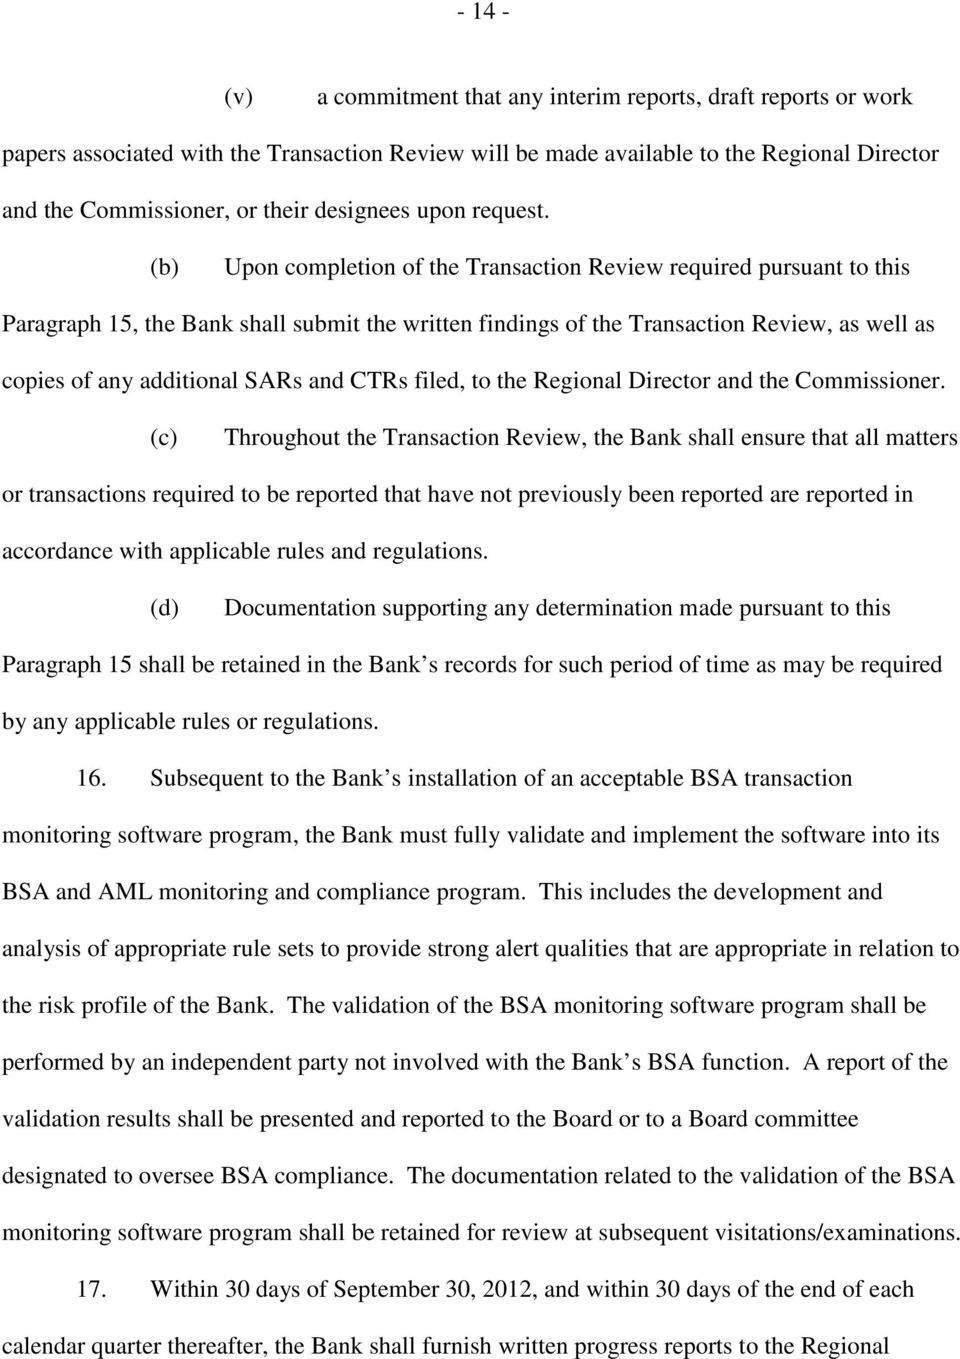 (b) Upon completion of the Transaction Review required pursuant to this Paragraph 15, the Bank shall submit the written findings of the Transaction Review, as well as copies of any additional SARs